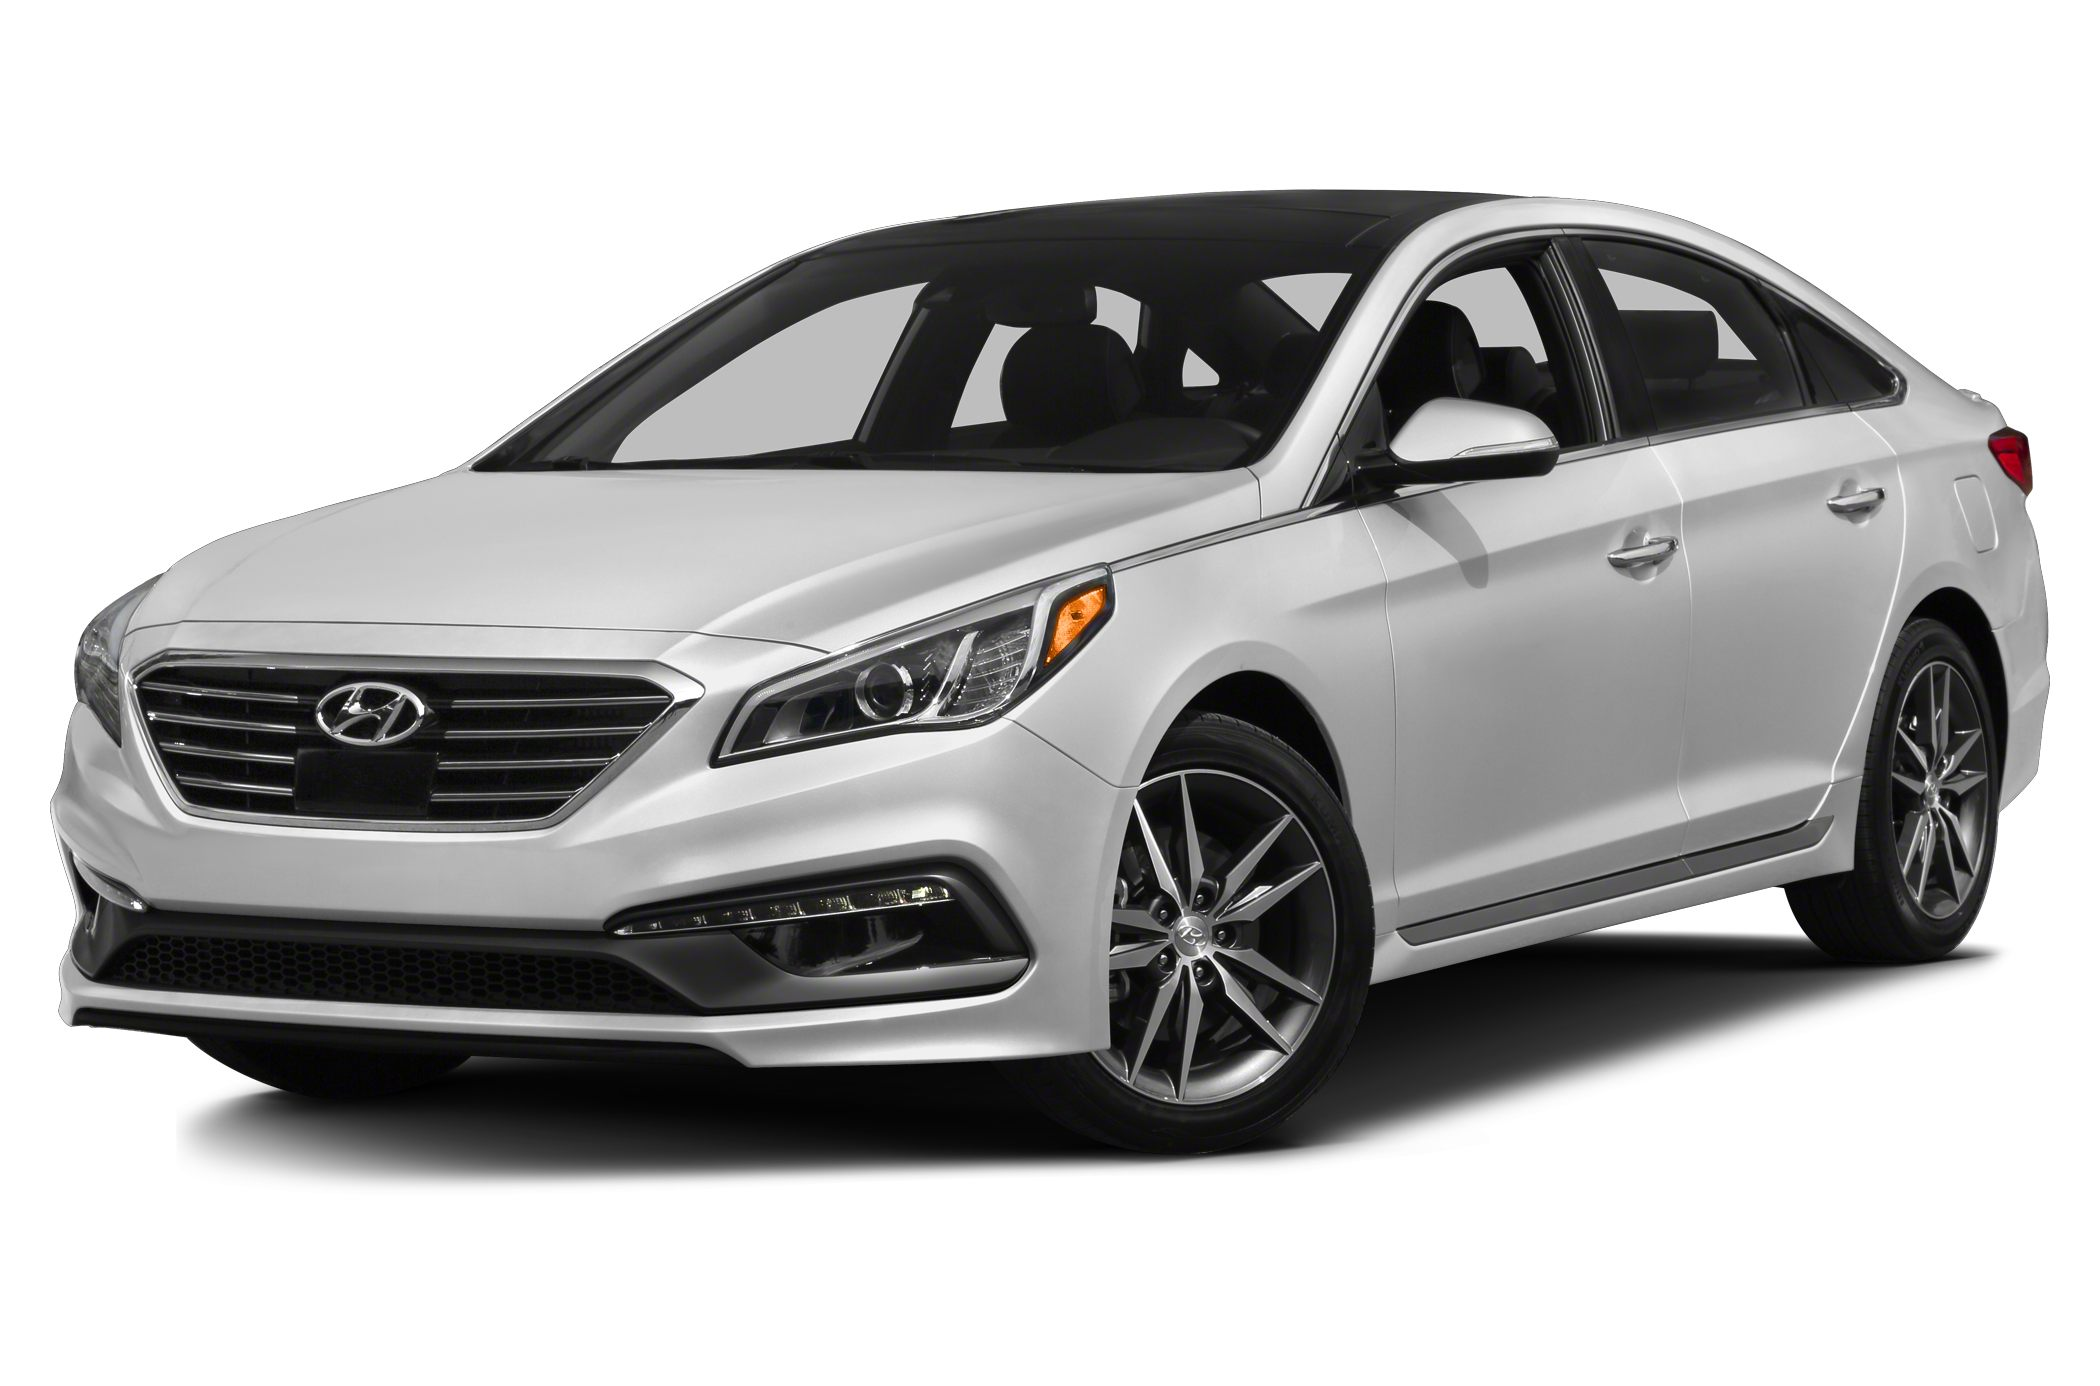 2015 Hyundai Sonata Sport Sedan for sale in Jefferson City for $27,725 with 12 miles